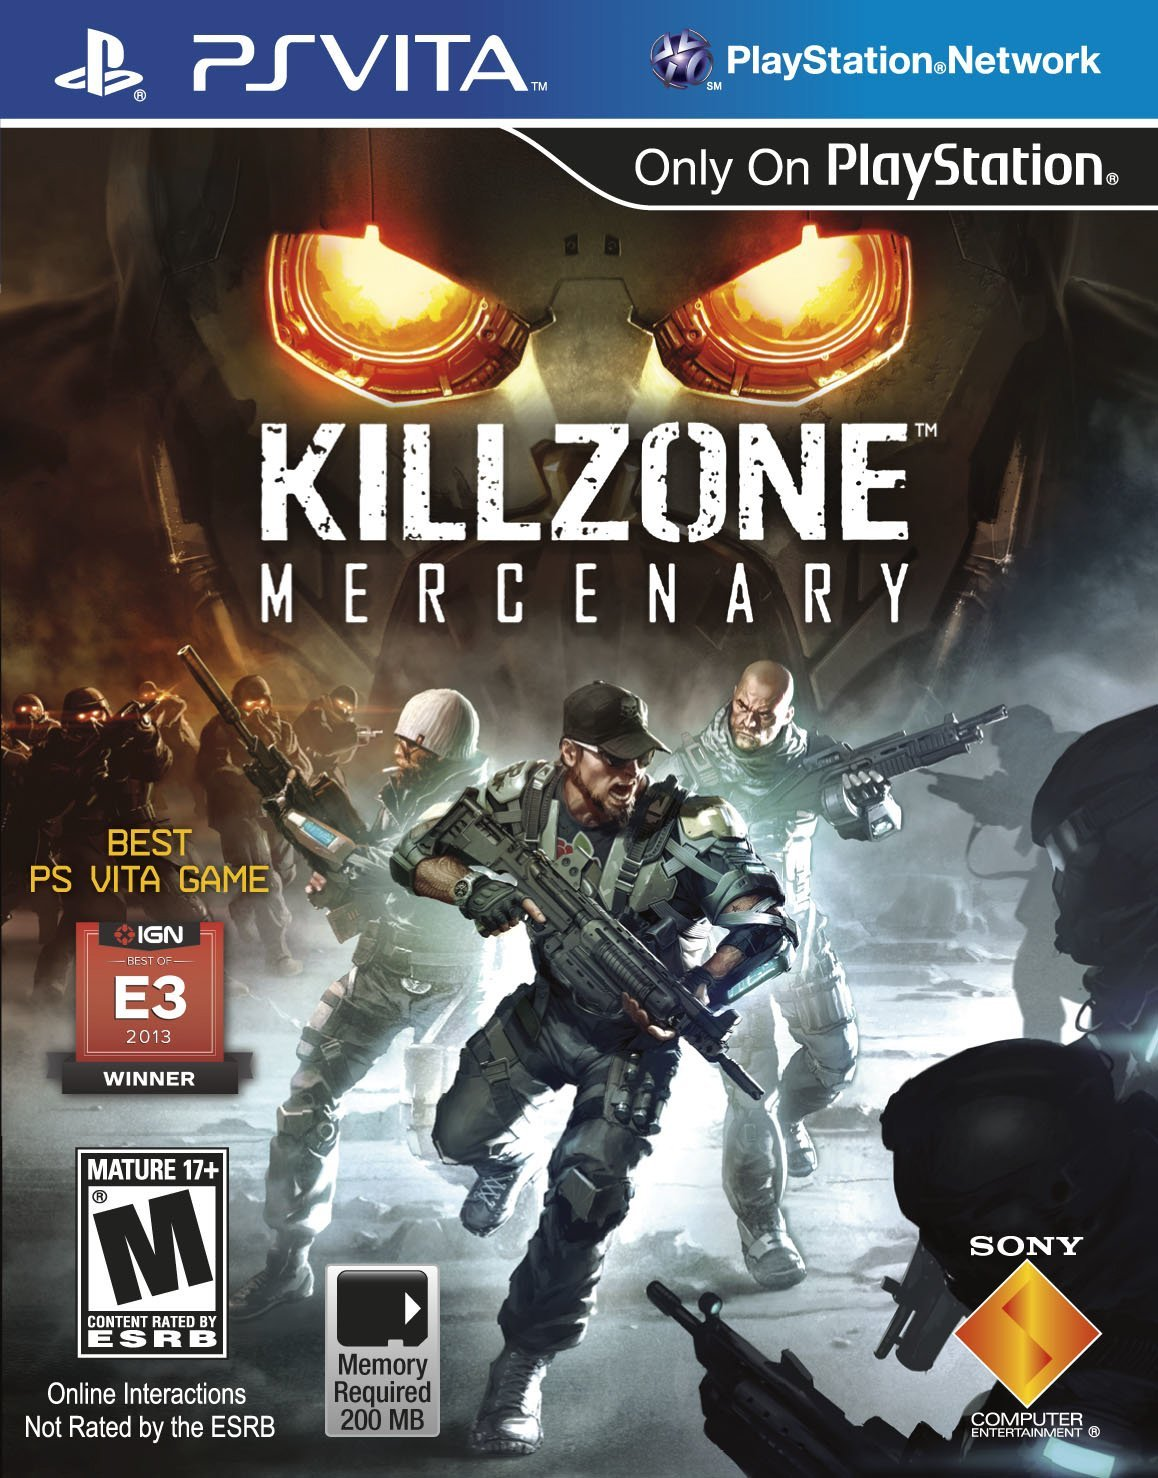 Killzone merc - Killzone Mercenary (VPK/MAI) PS VITA